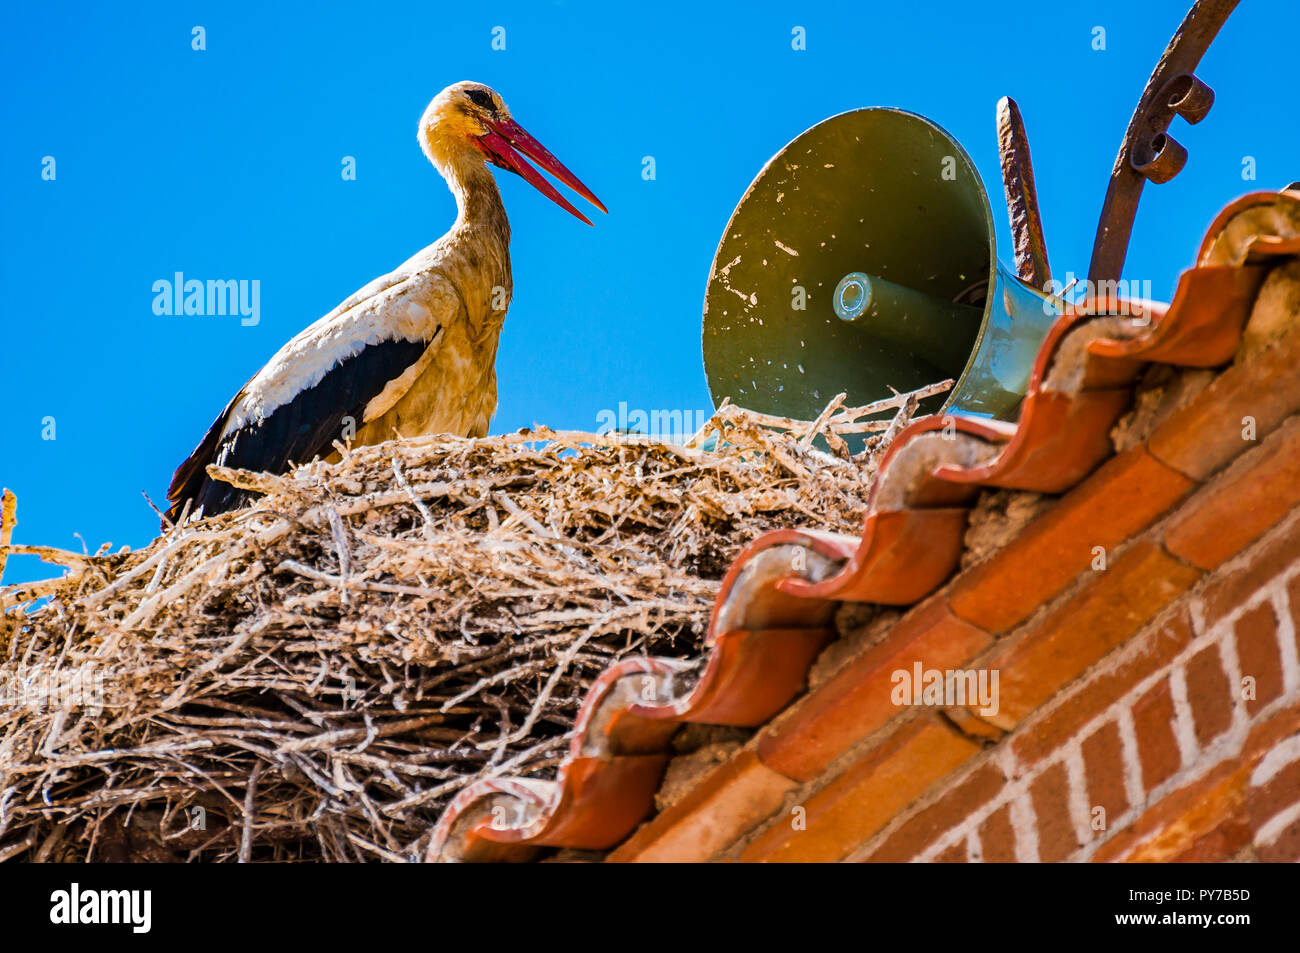 Stork nest next to the speakers in the town hall clock tower. Village of El Gordo, the town with the largest stork colony in Spain. El Gordo, Caceres, - Stock Image